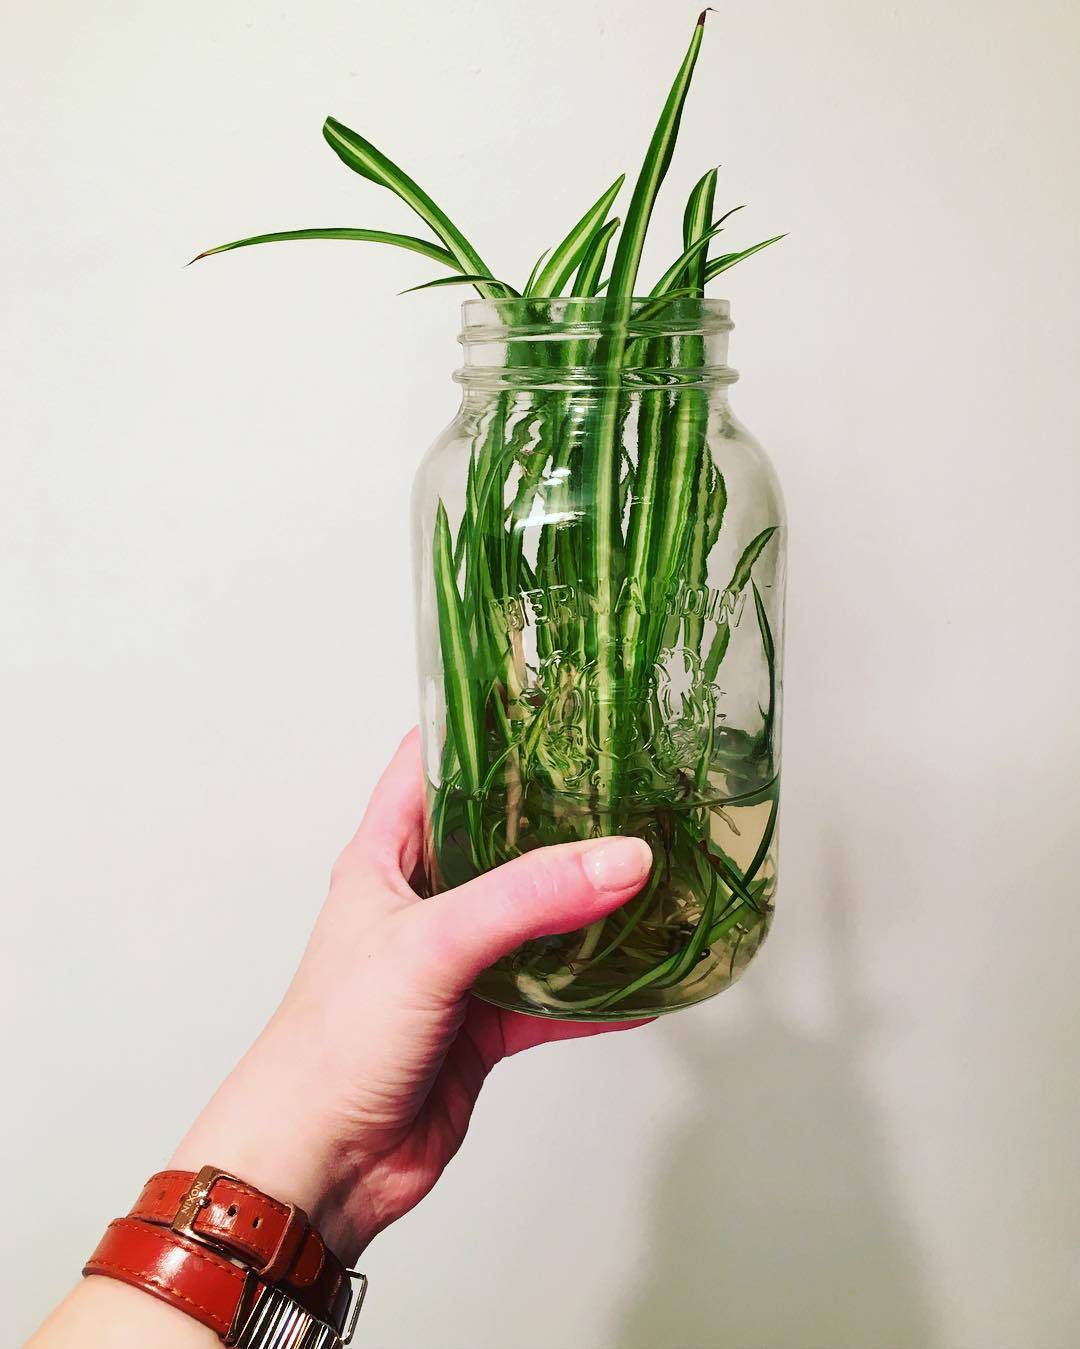 A spider plant only needs NOURISHMENT and a safe space with room to grow, just like you. Let us help you make the space for your future growth.